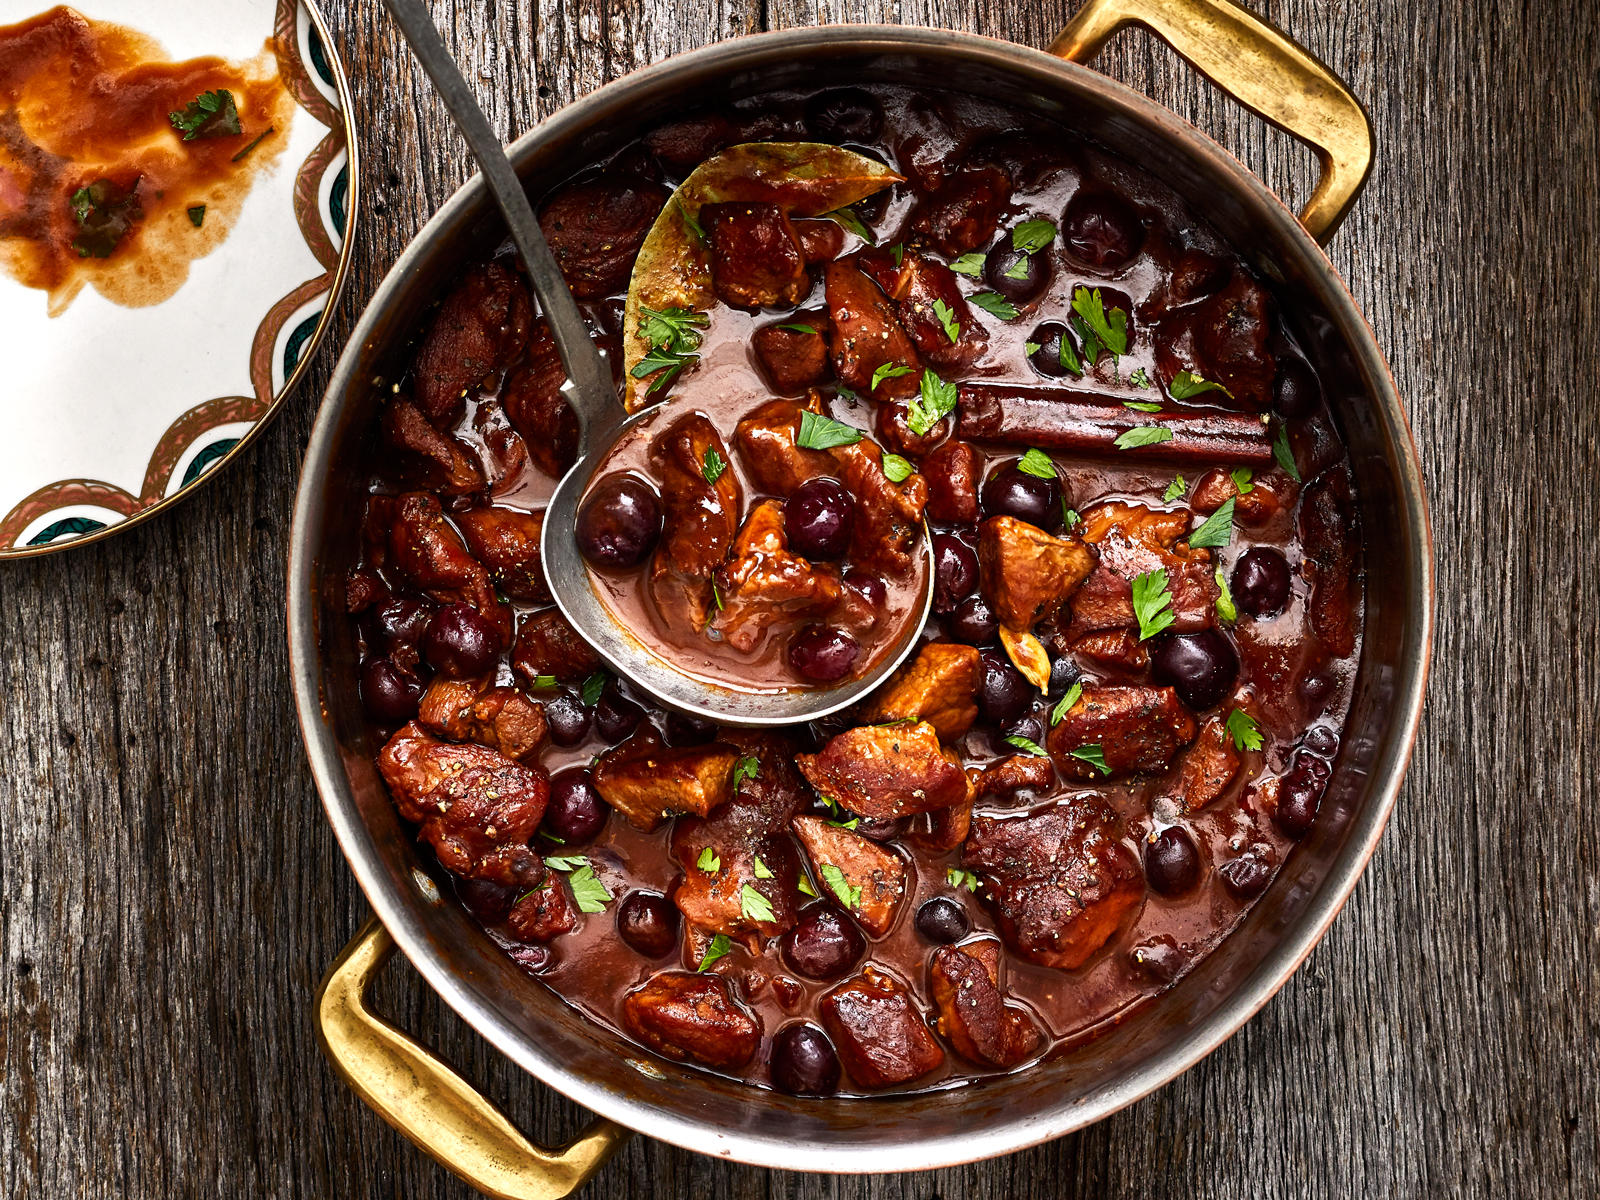 oven-braised-veal-stew-with-black-pepper-and-cherrie-FT-RECIPE0120.jpg